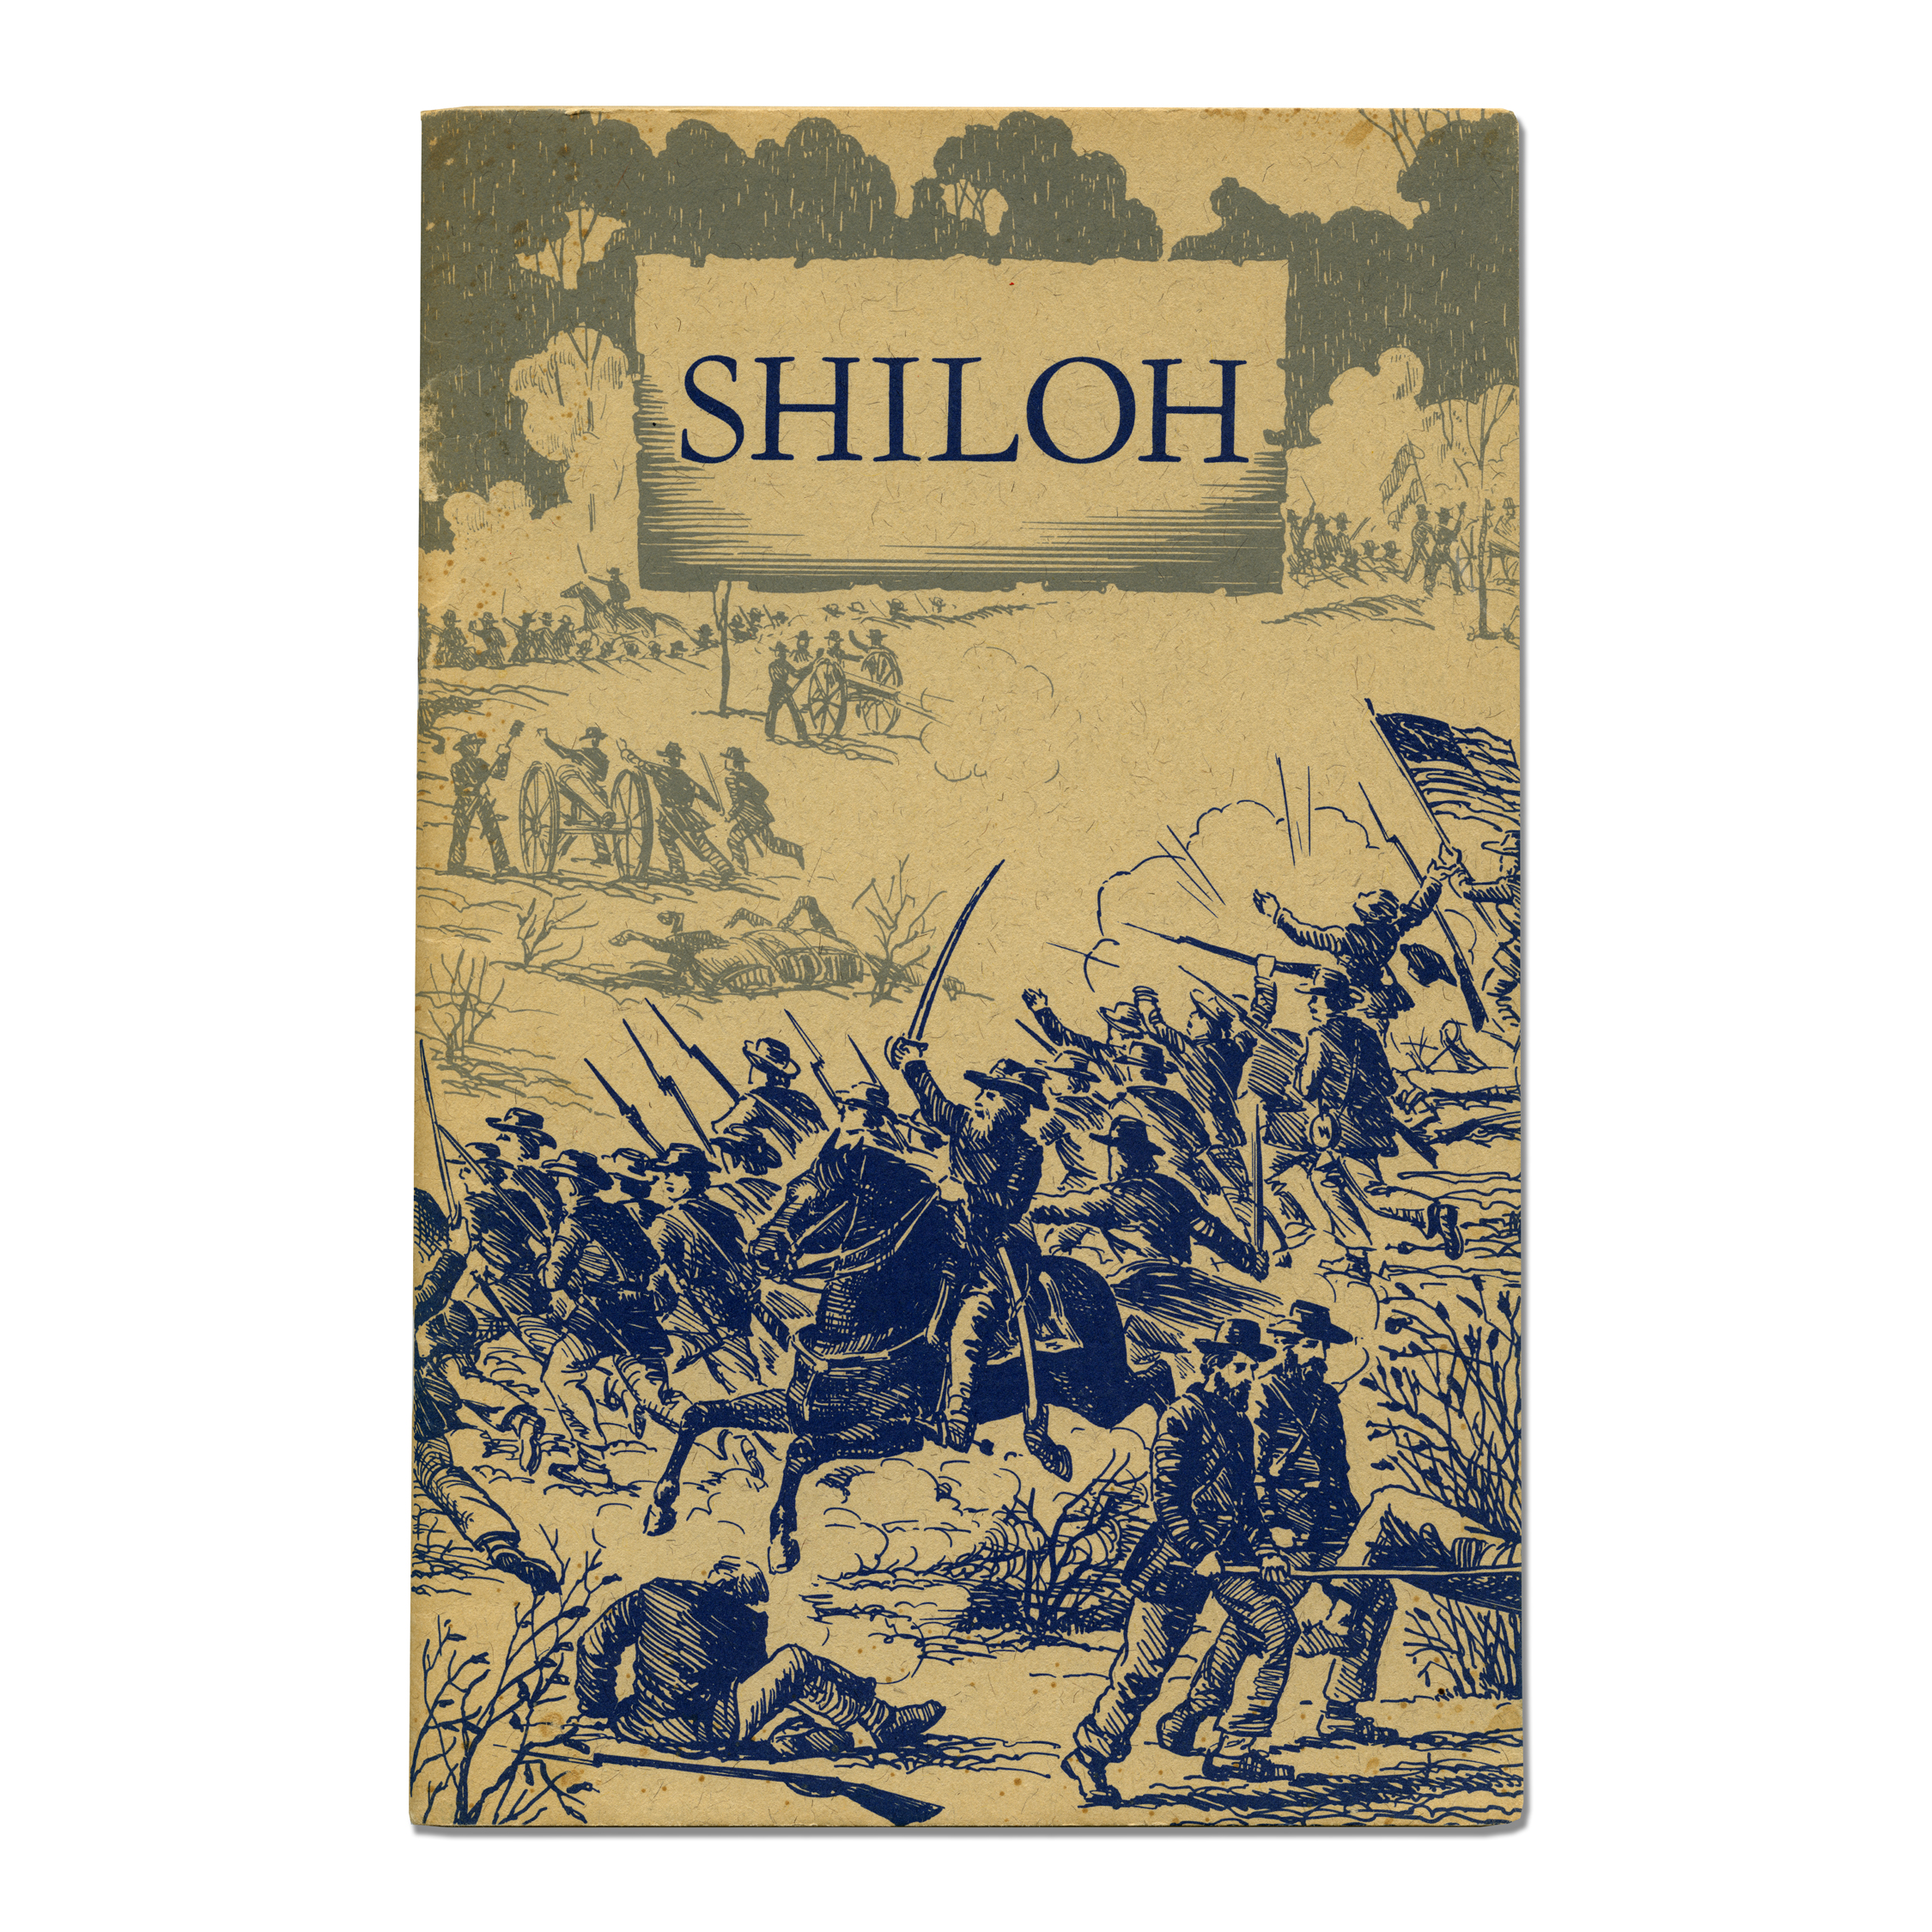 1961_shiloh_national_military_park_brochure.jpg